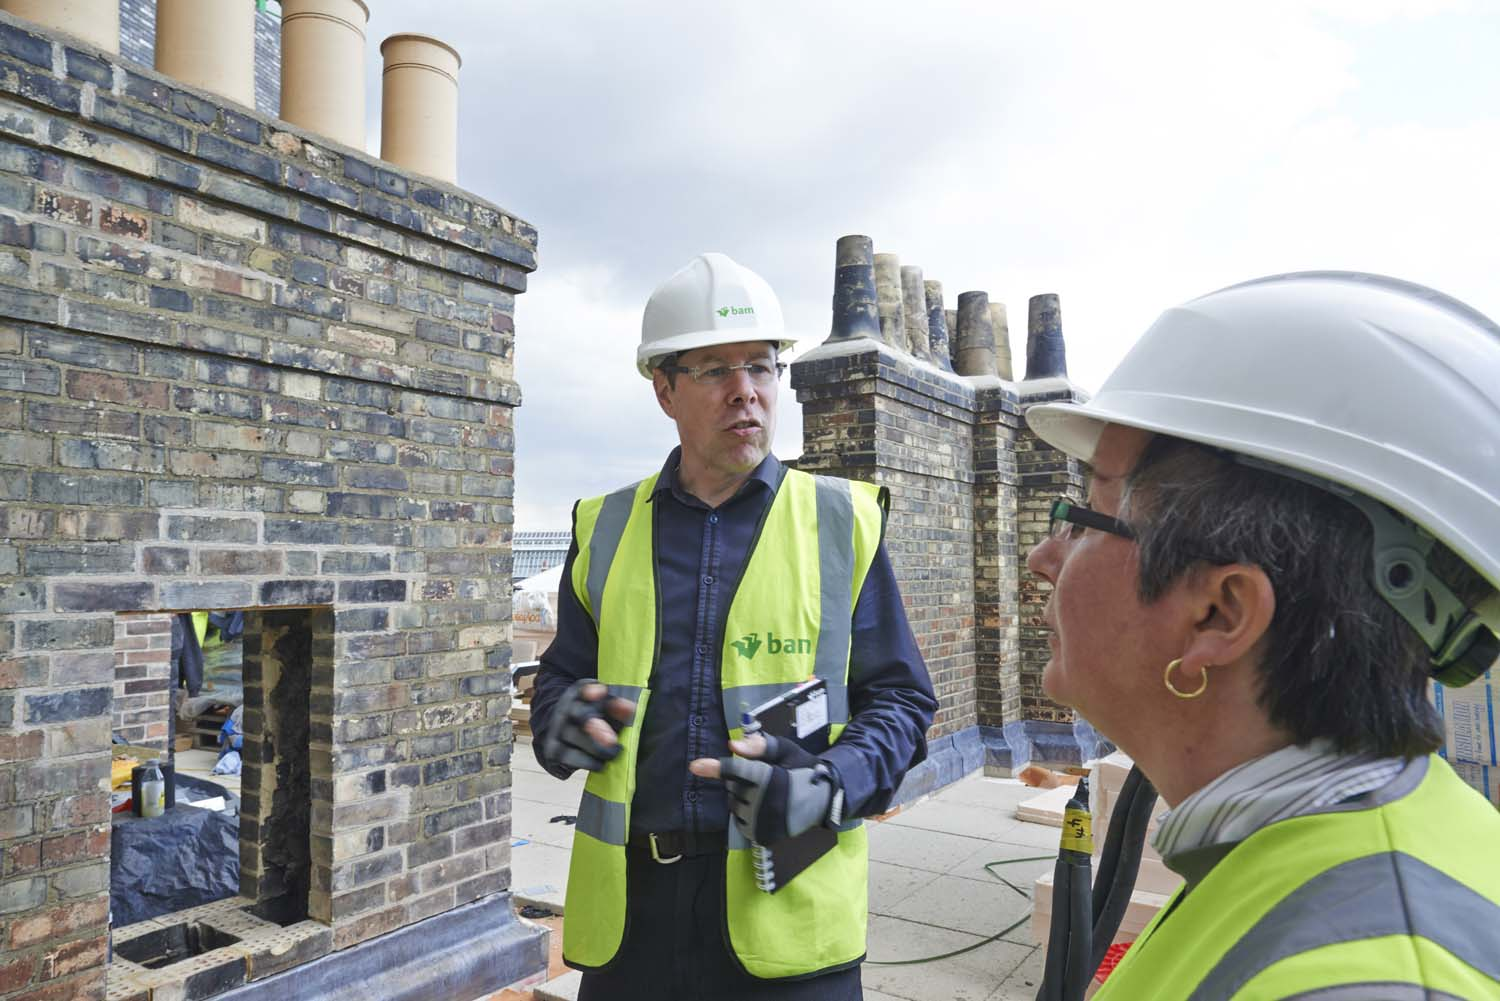 Building inspector at Work, Kings Cross, London for LABC